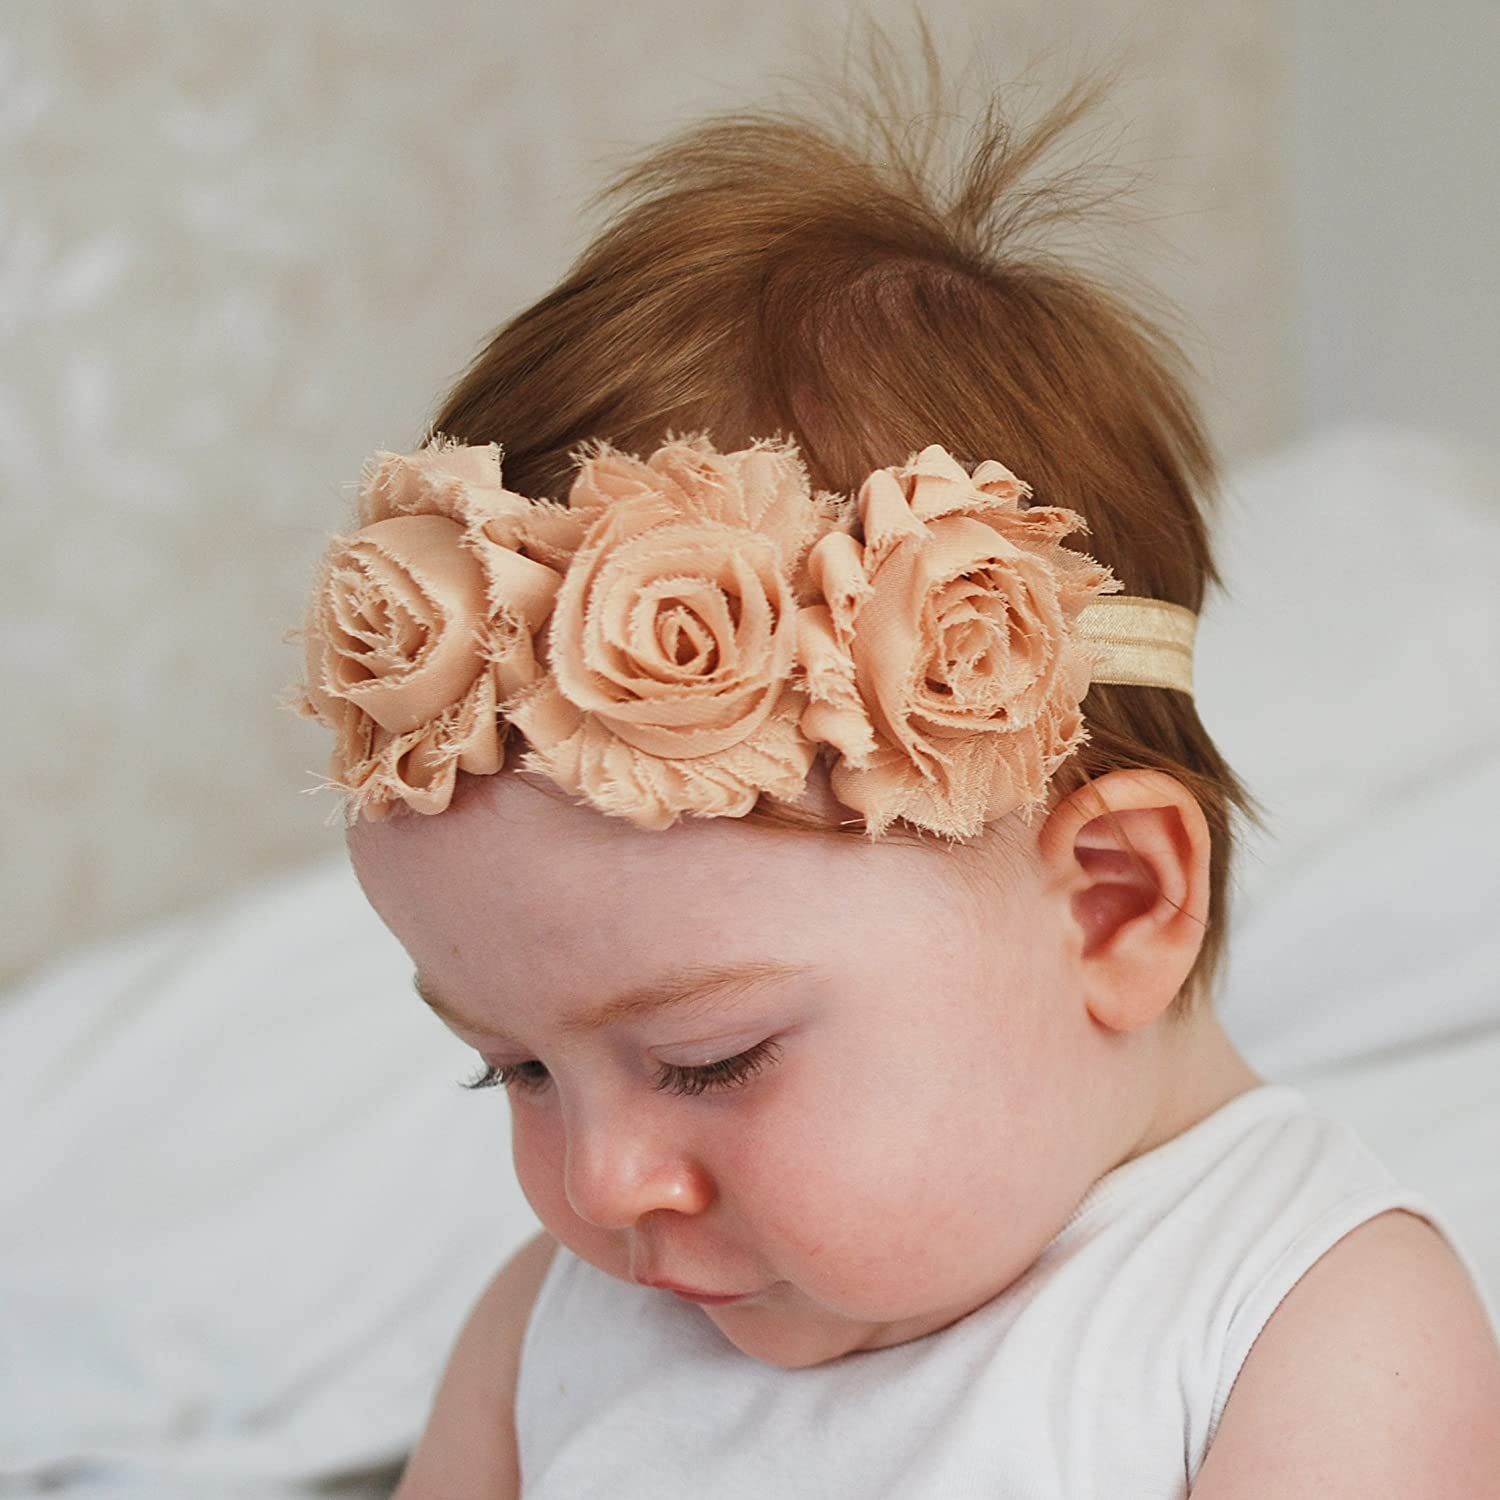 Peach and Ivory QueenMee Christening Headbands for Baby Girl Ivory Peach Baby Christening Headband Set Baby Baptism Headband Set Christening Hairband Hair Band Christening Hair Accessories Baby Headbands With Flowers